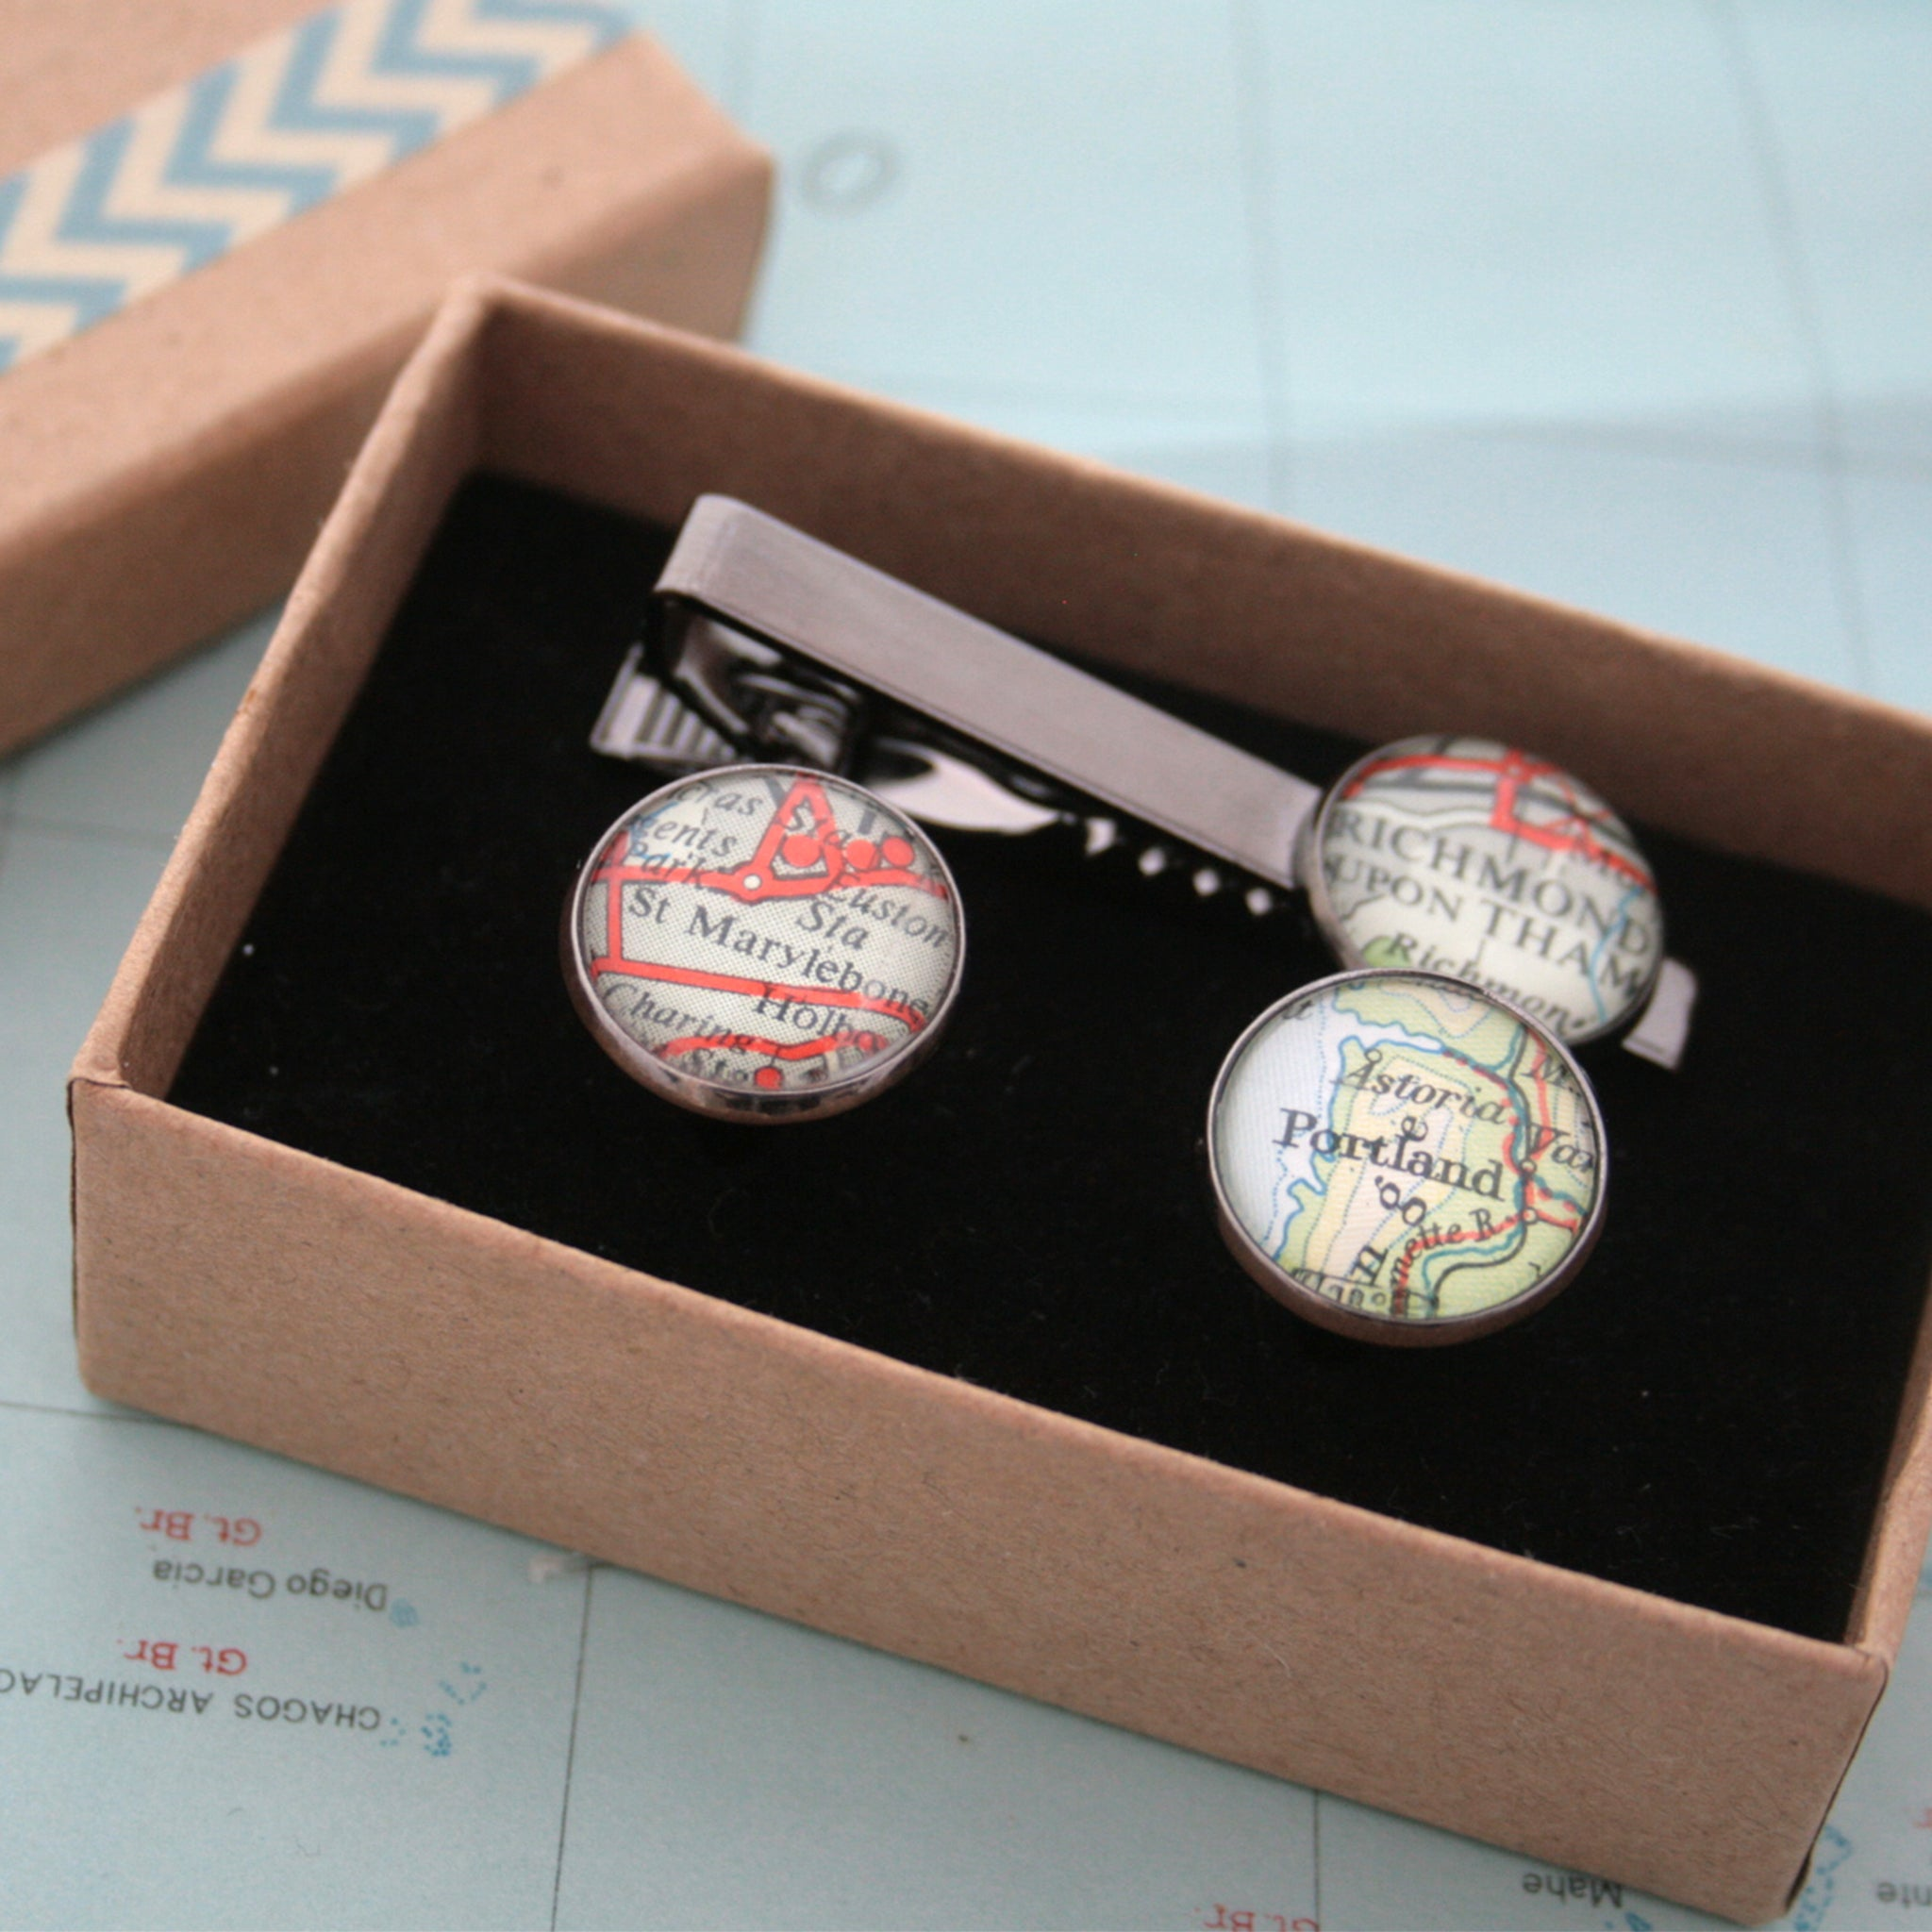 Tie clip and cufflinks in gunmetal black color featuring selection of map locations in a box